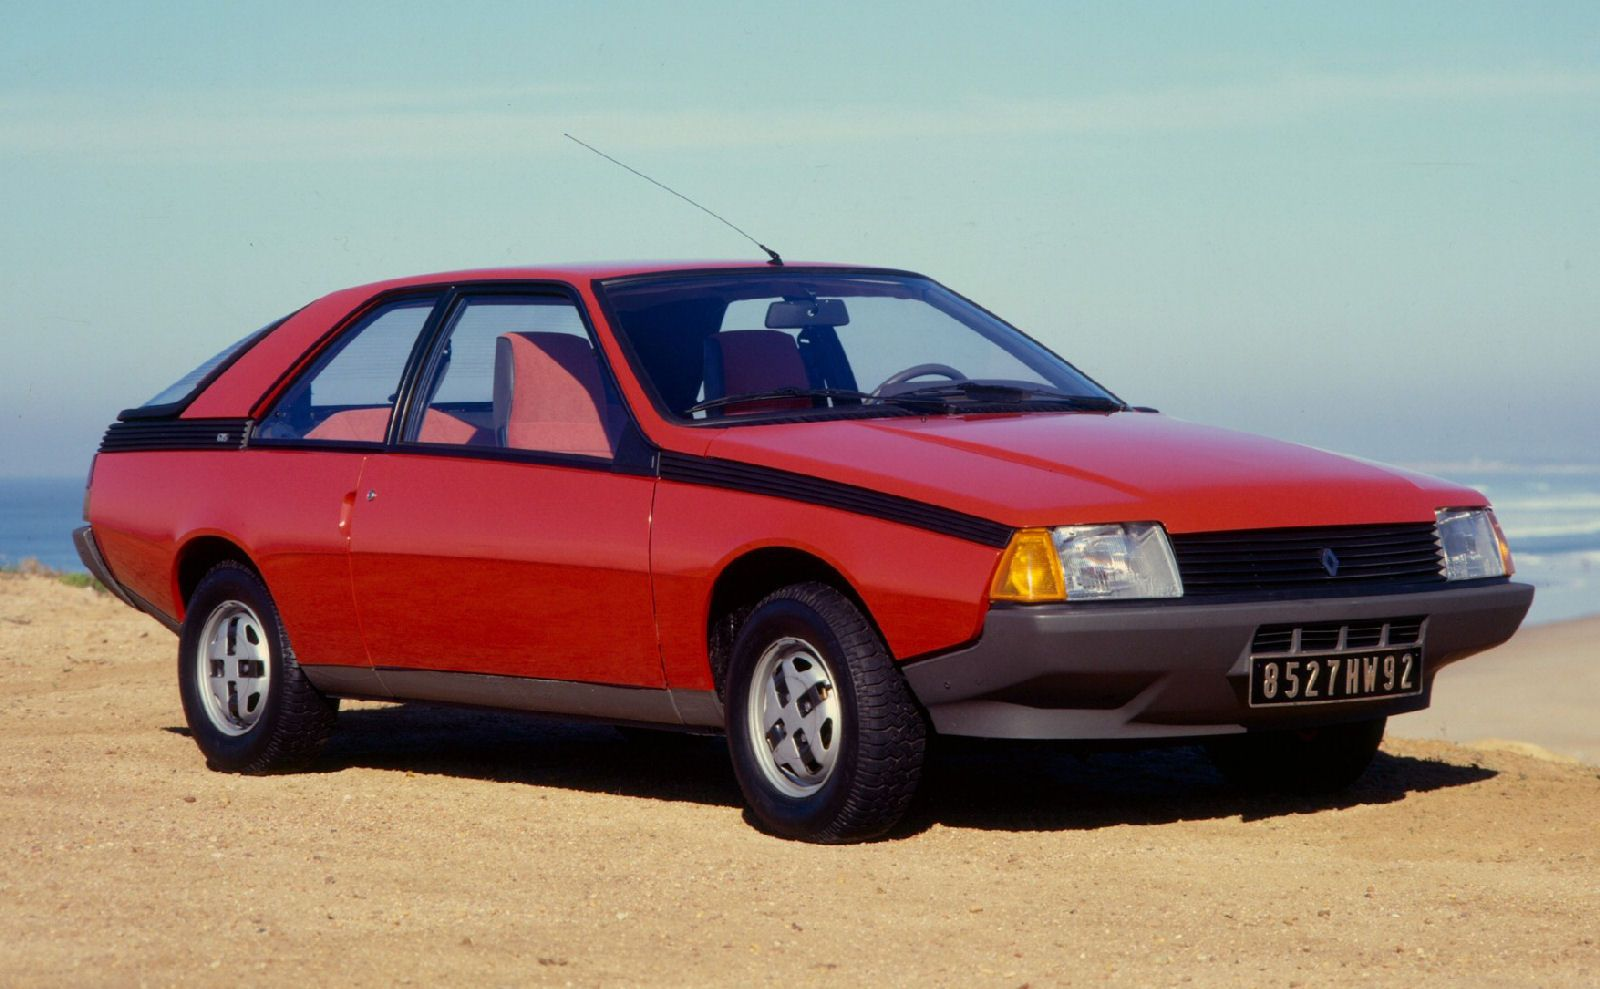 Rouge Avd Renault Fuego R4 1980 Voiture Des Annees 70 A 90